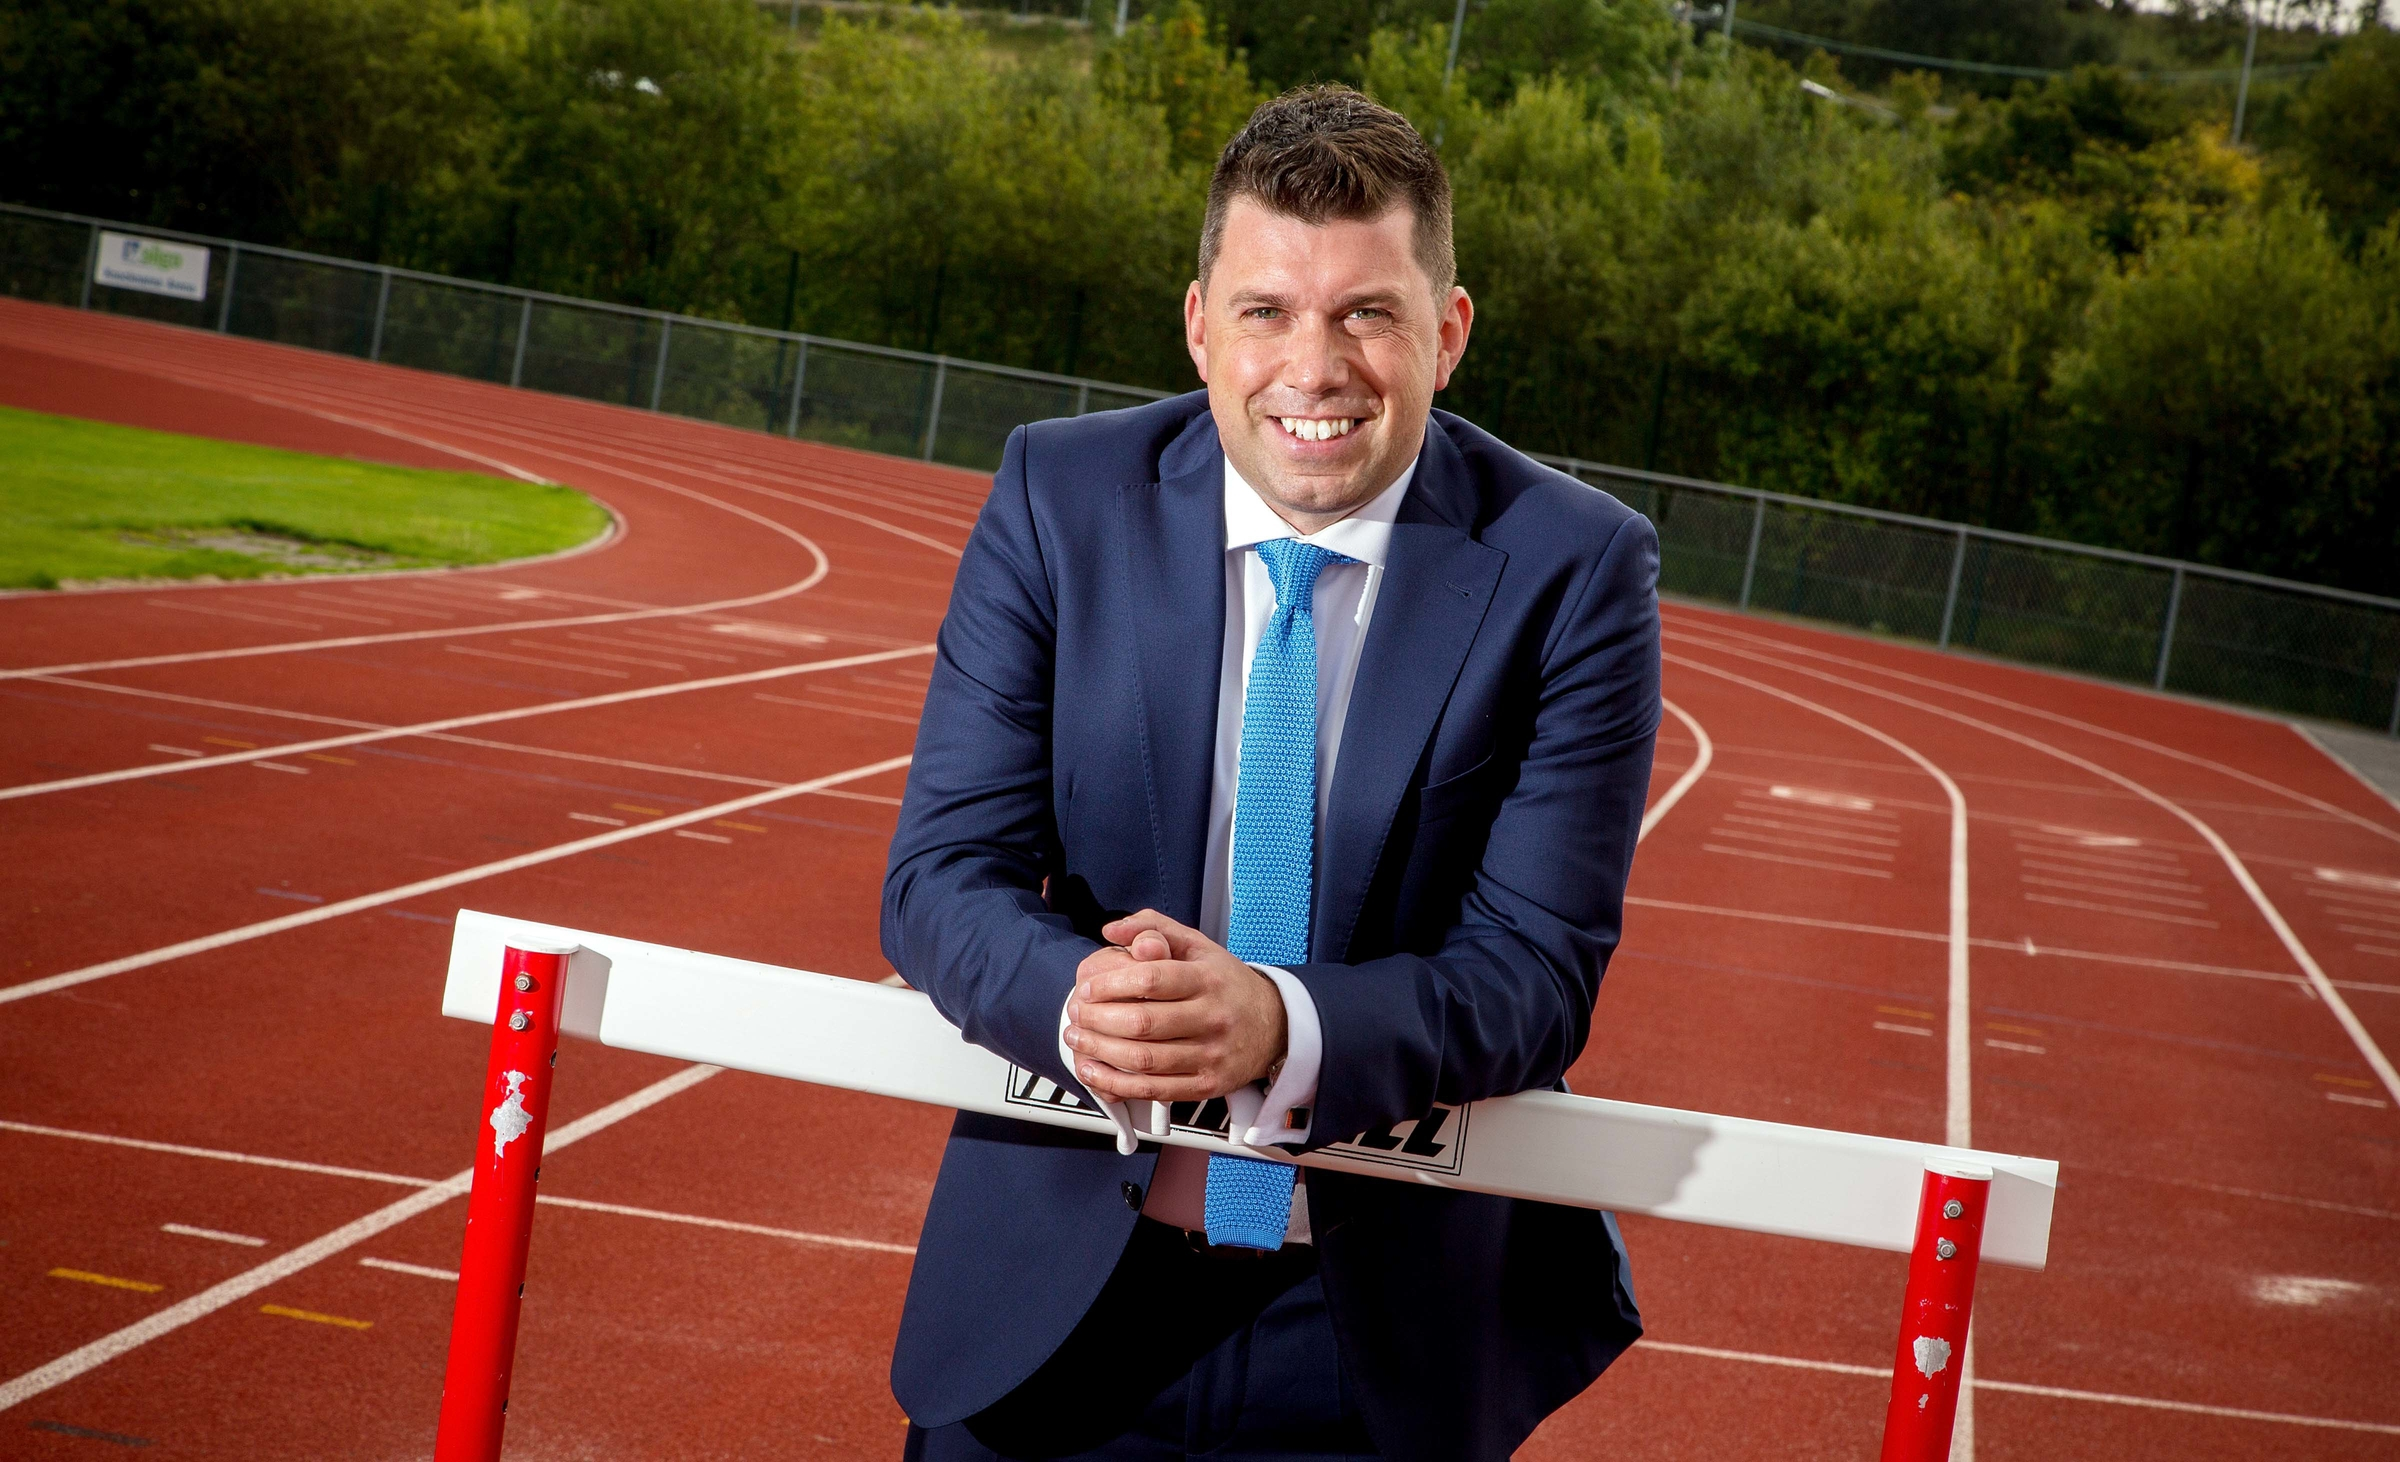 Dr Brian Moore, Founder and MD of ORRECO, based at based at IT Sligo's Innovation Centre, on at the running track at IT Sligo. Photo: James Connolly 14SEP15